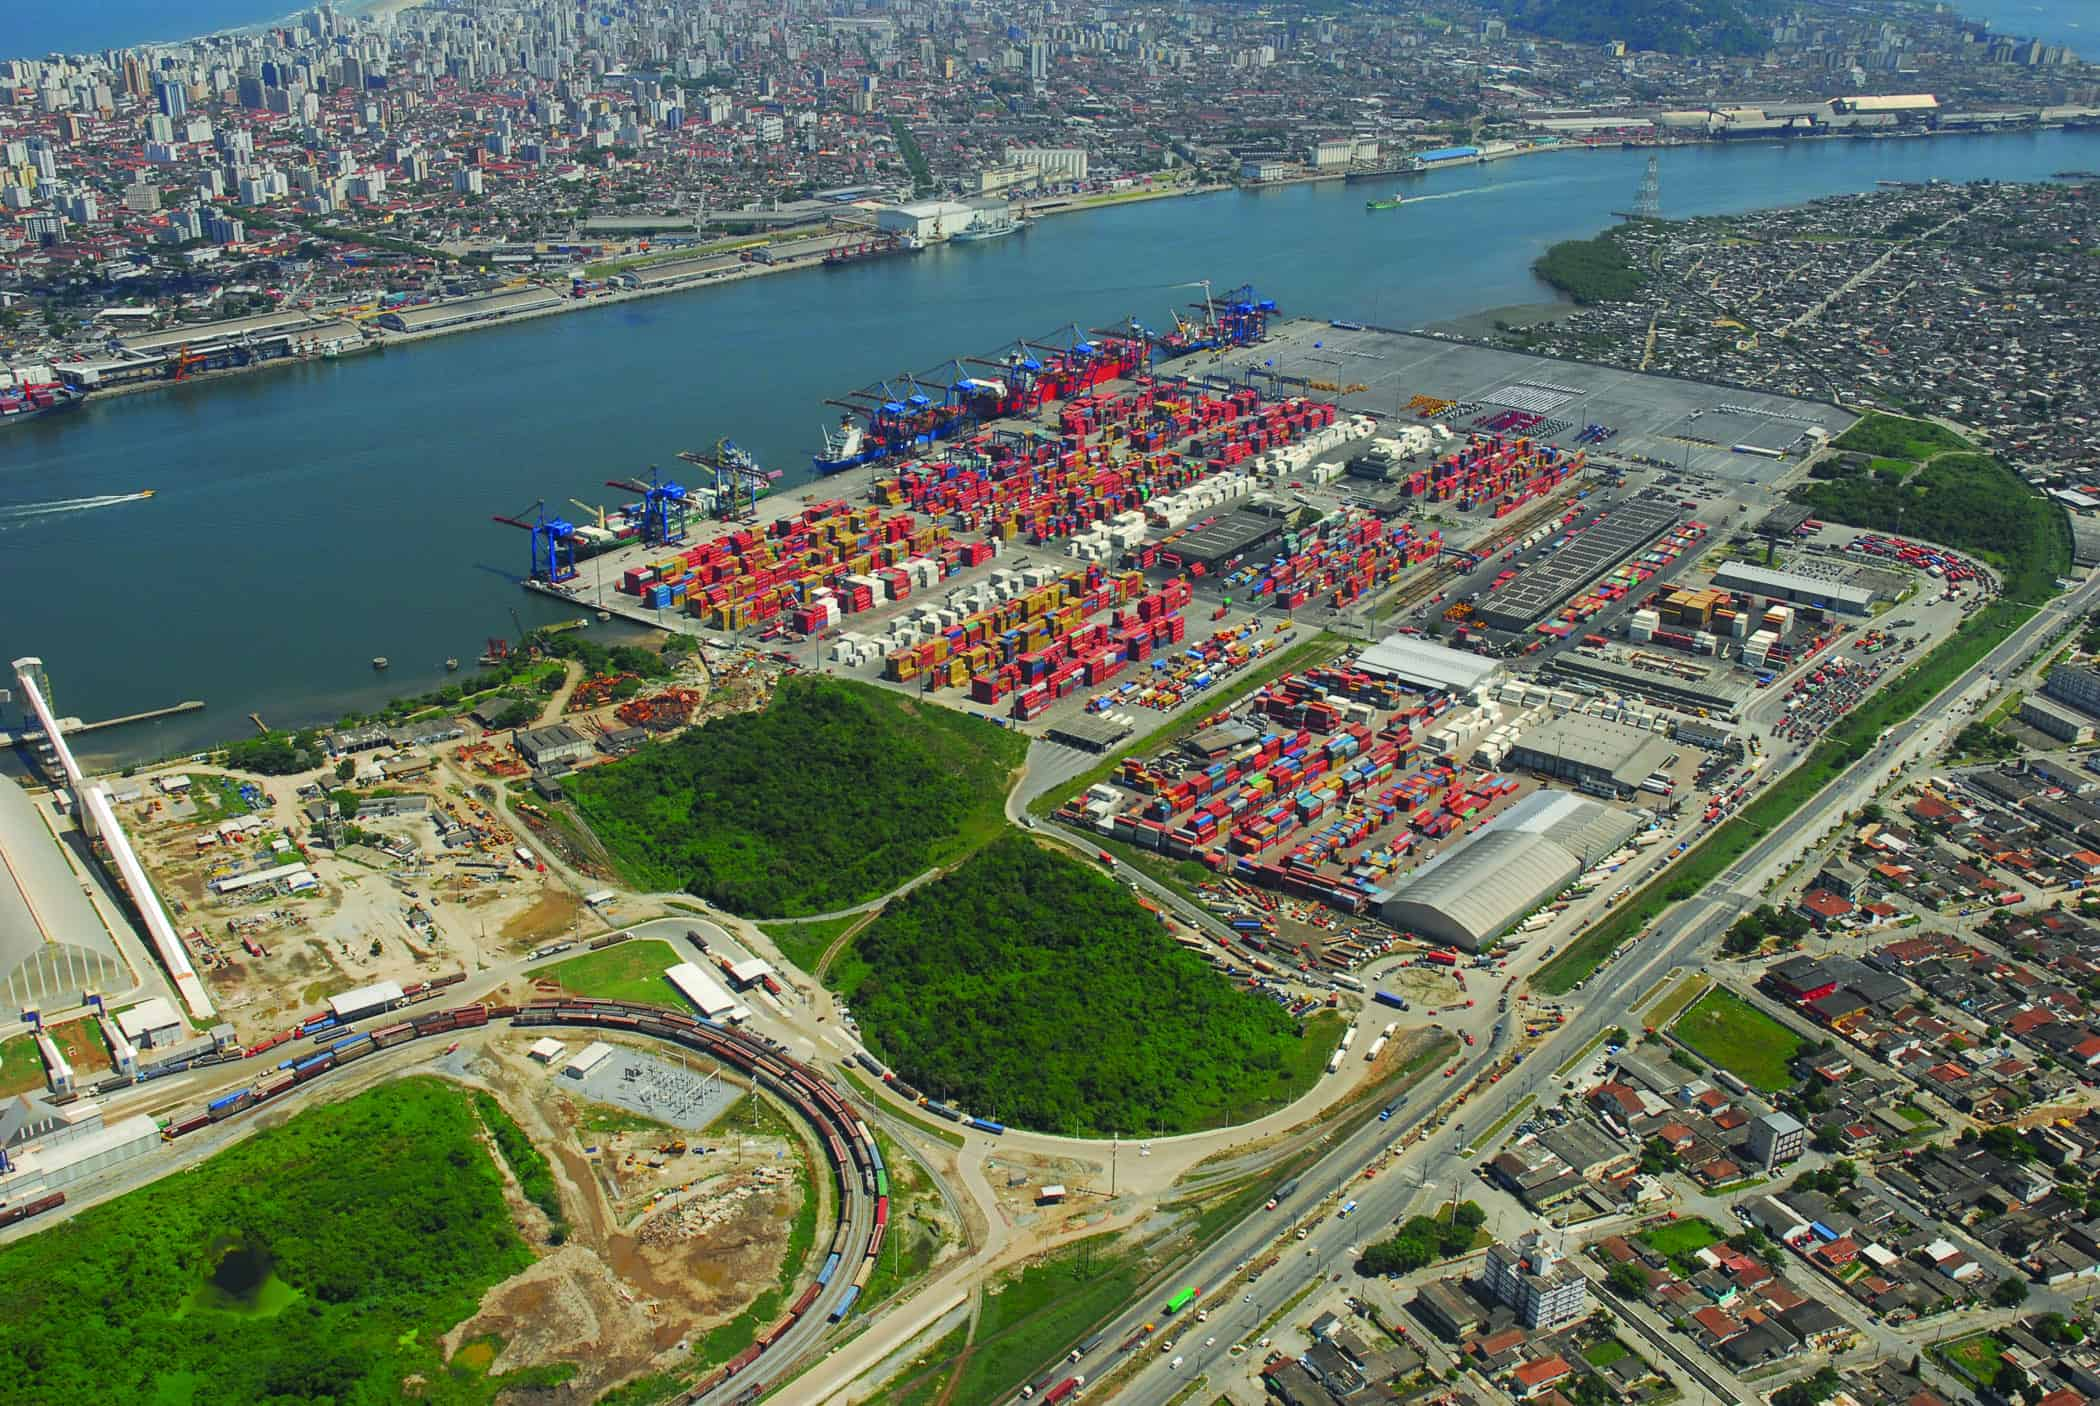 Santos Brasil extends concession of Tecon Santos terminal to 2047